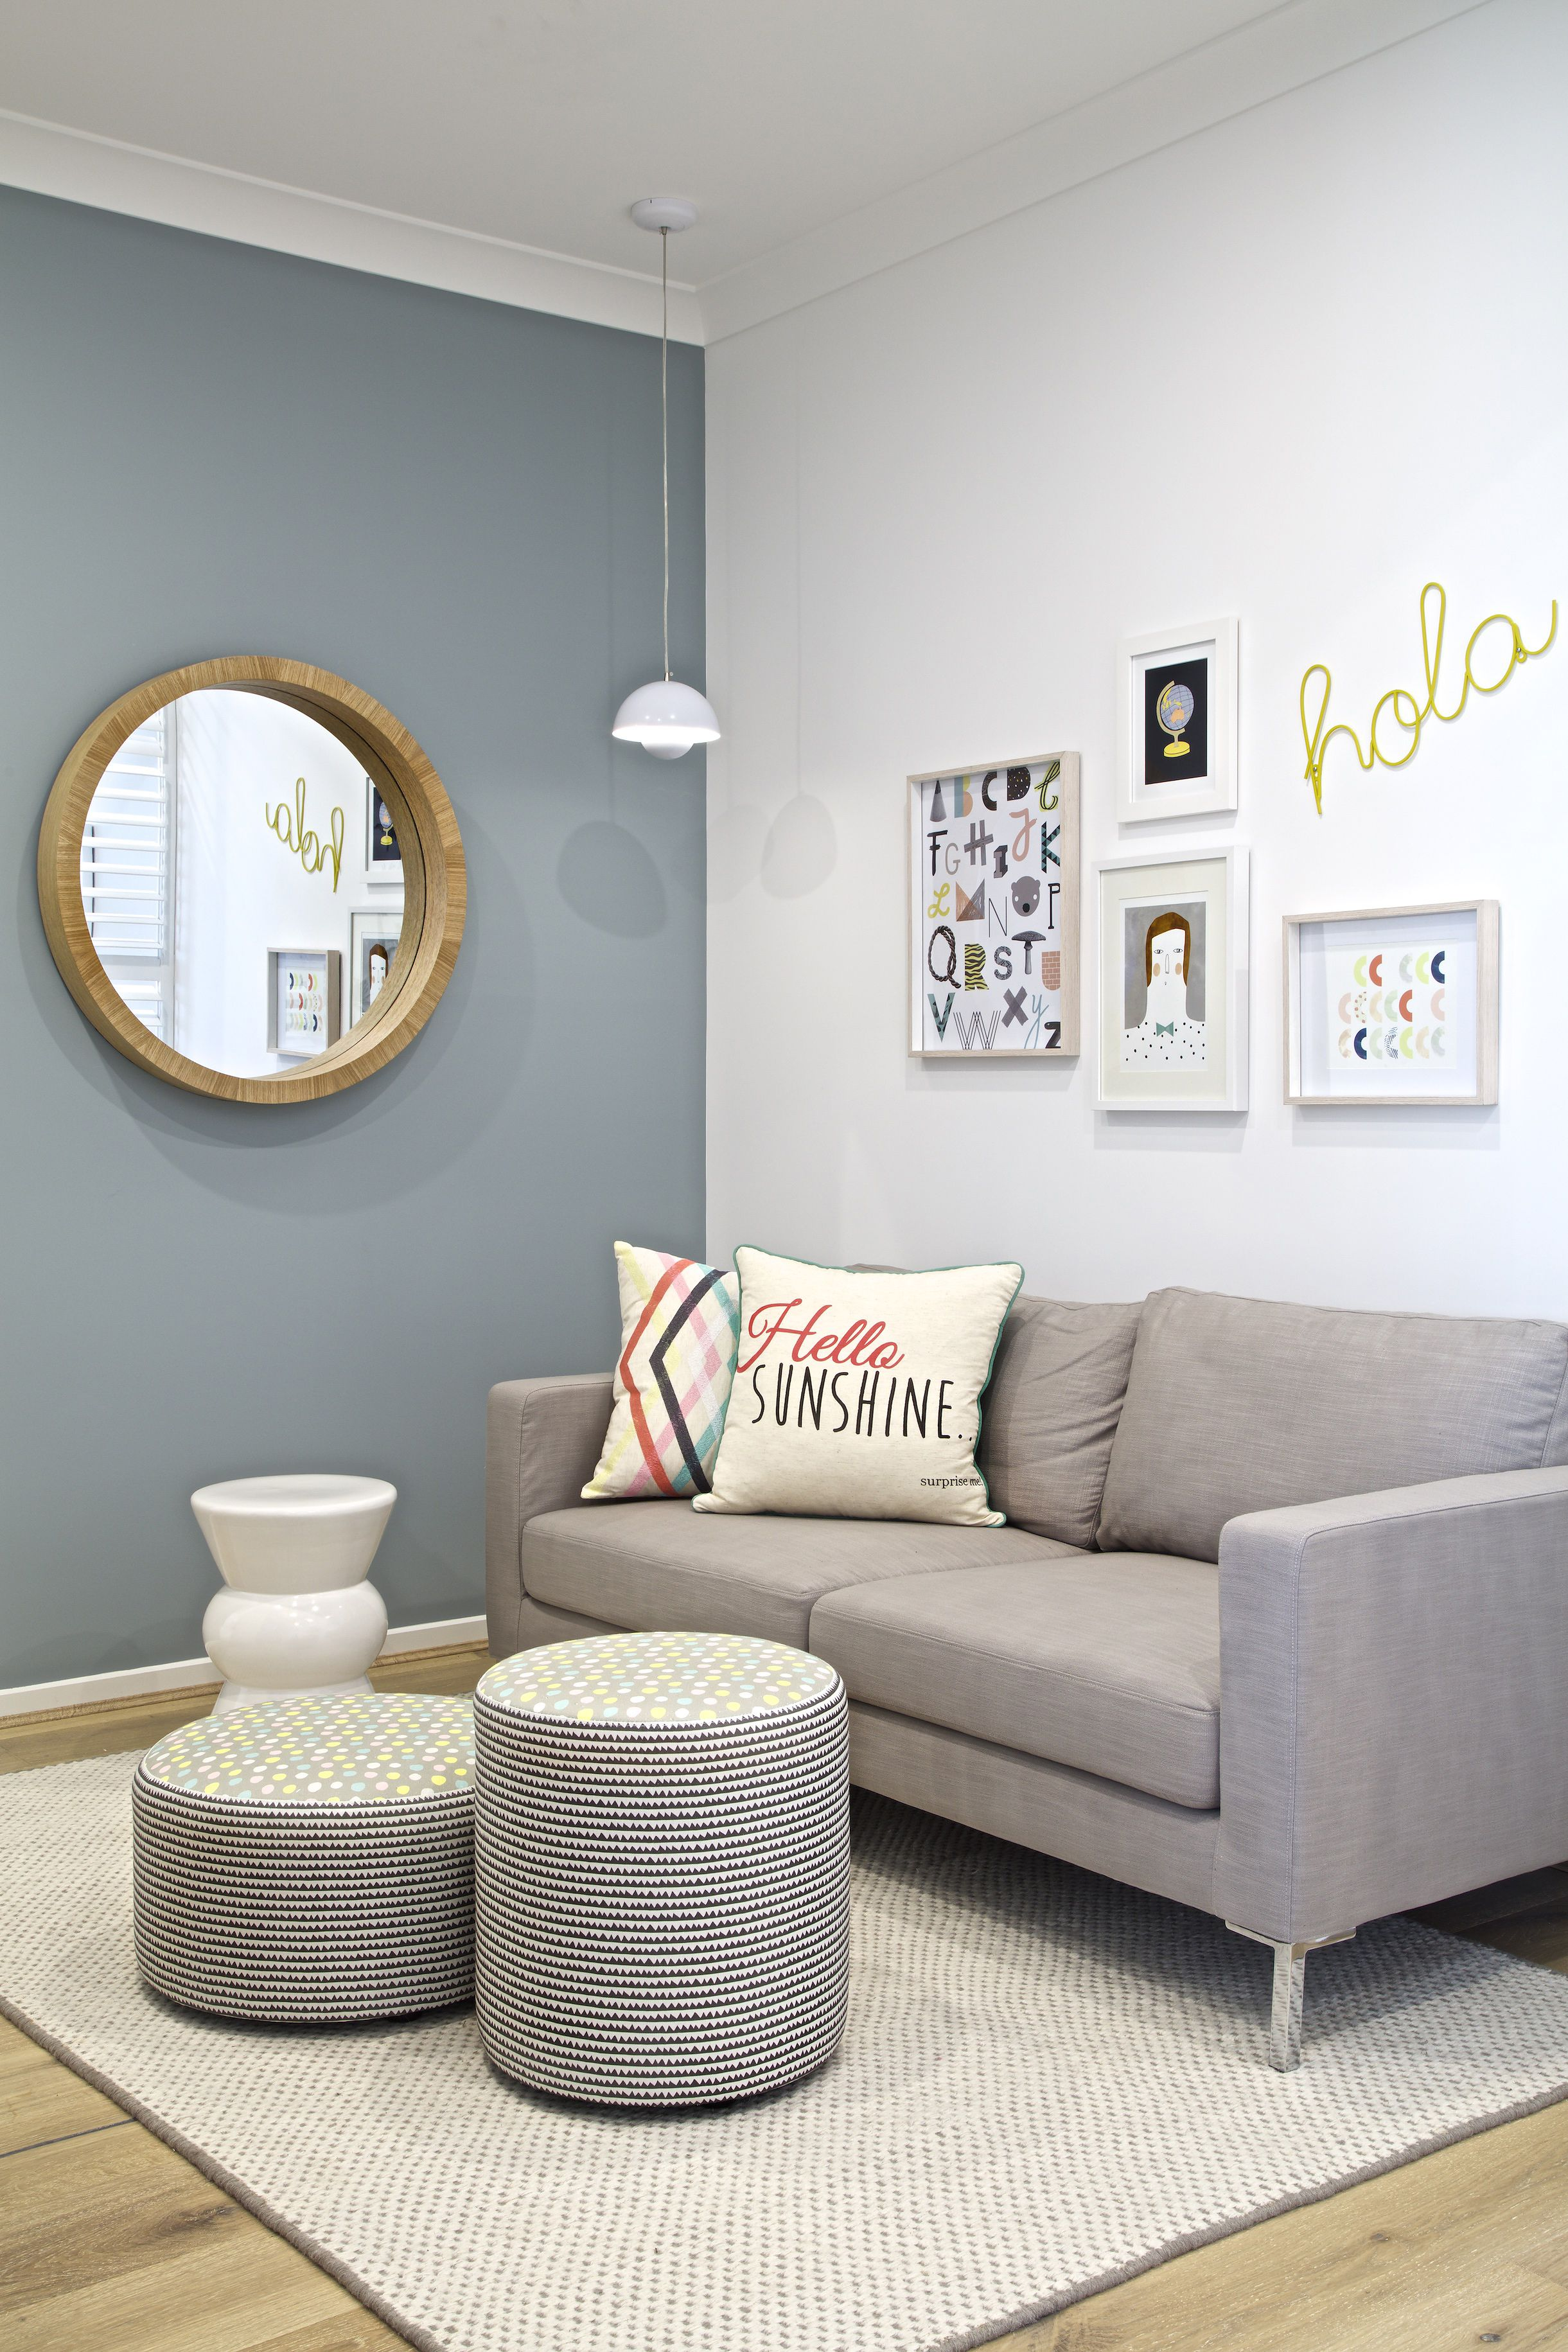 Living Room Feature Wall Decor: Clarendon Homes. Newhaven 27. Beautiful Lounge Area With